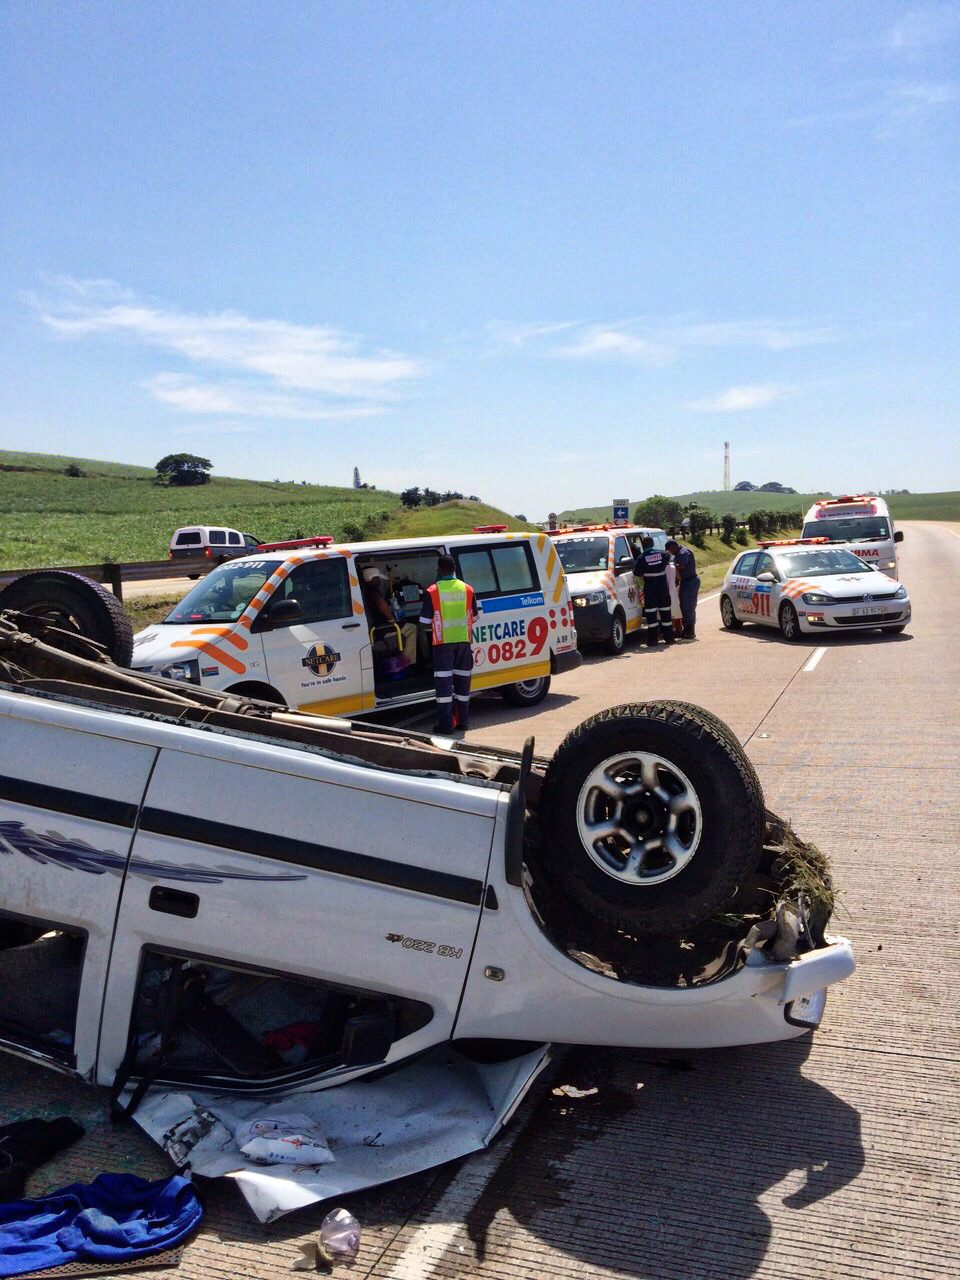 Five people were injured after a bakkie overturned on the N2